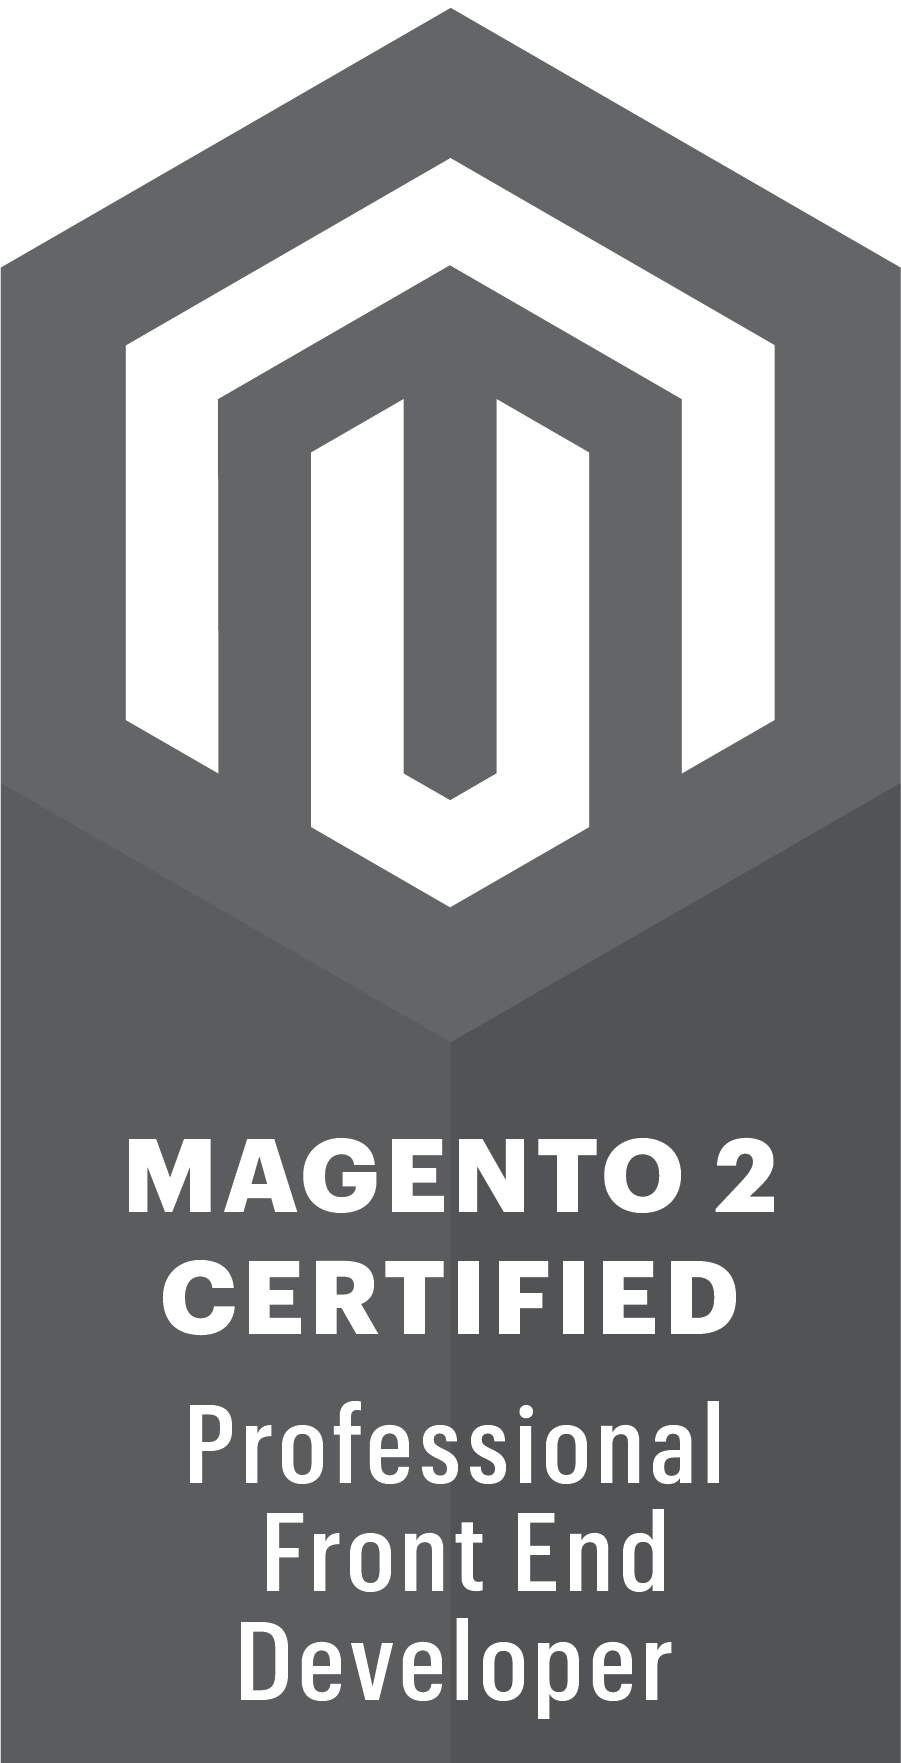 MAGENTO 2 CERTIFIED PROFESSIONAL FRONT END DEVELOPER badge